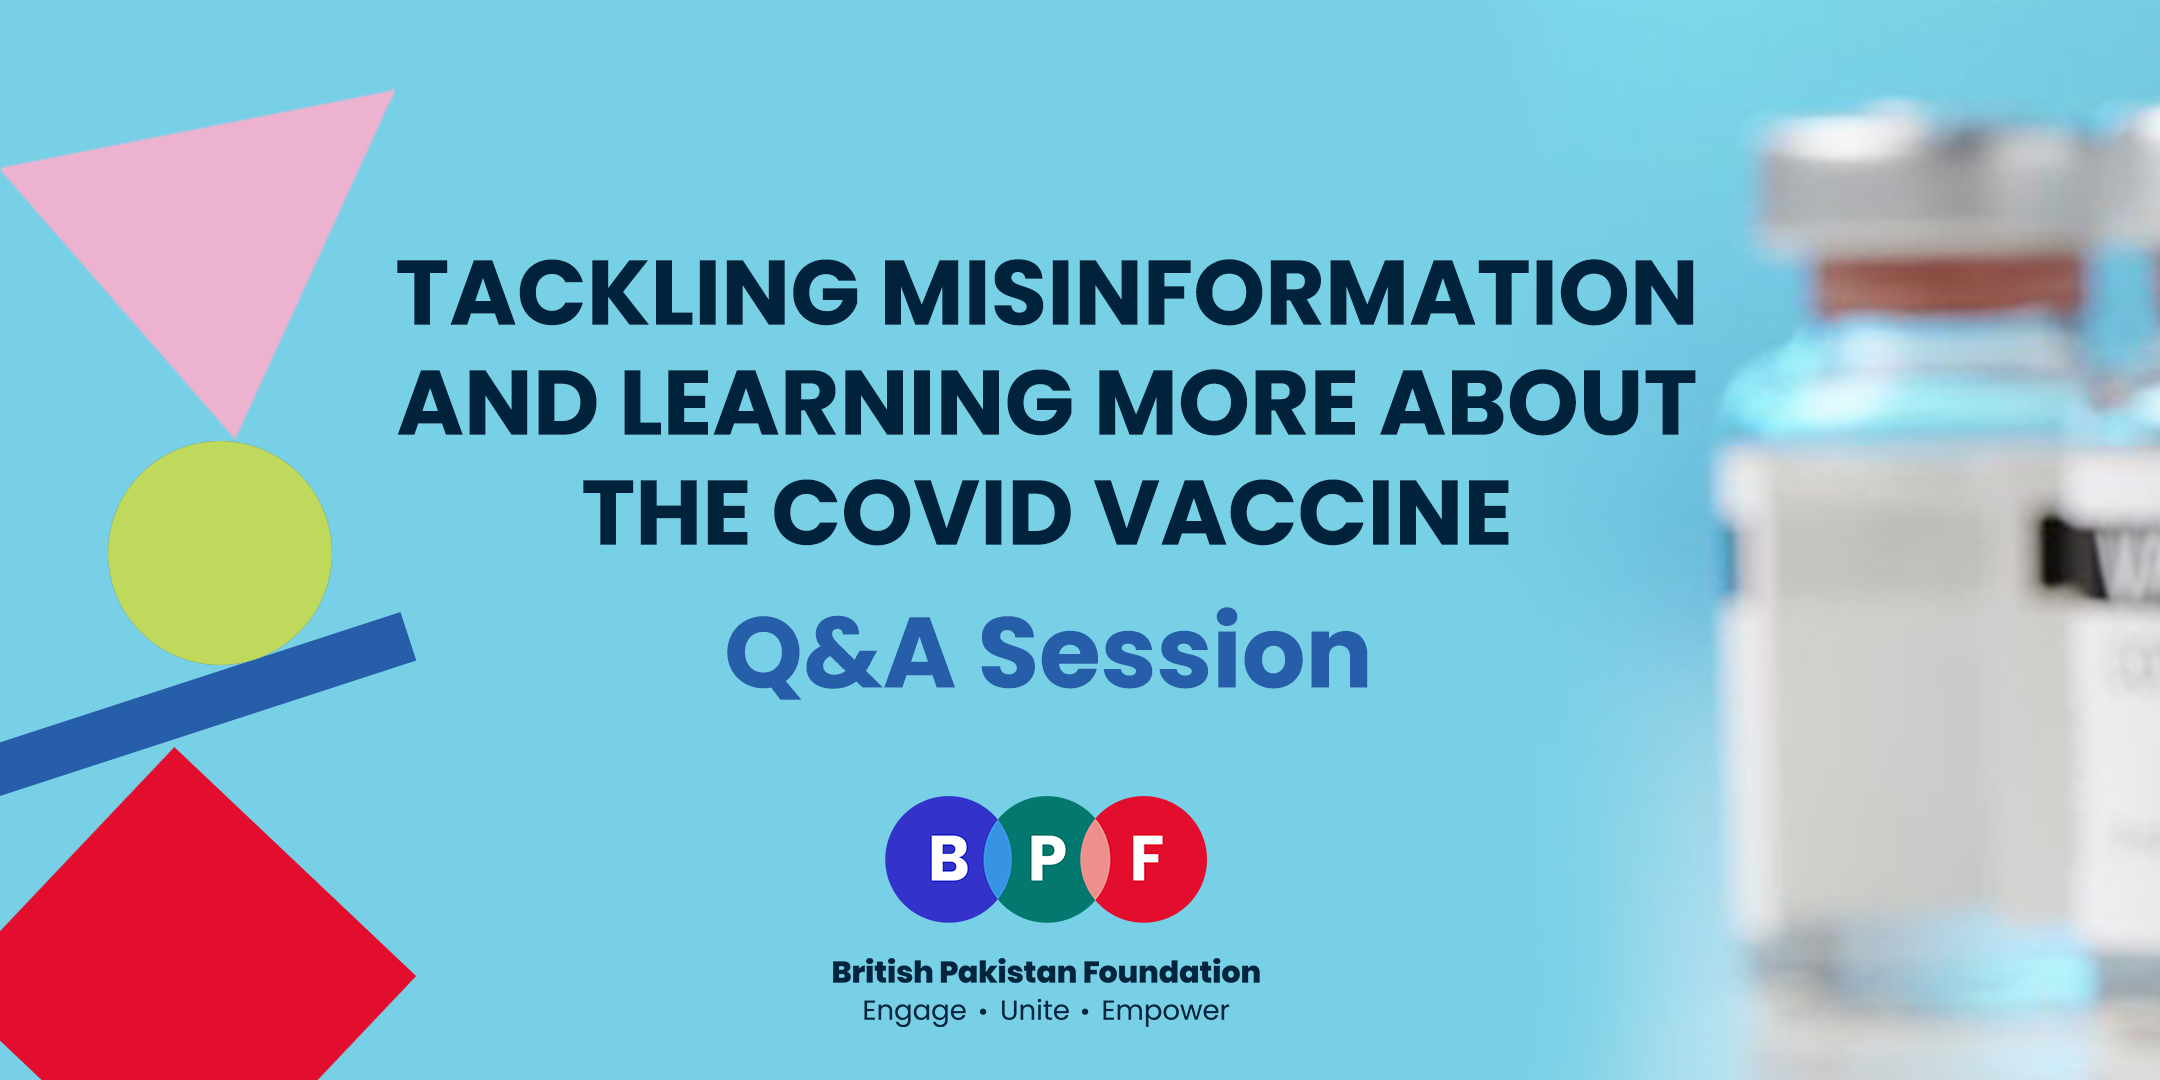 Q&A Session about the Coivd Vaccine